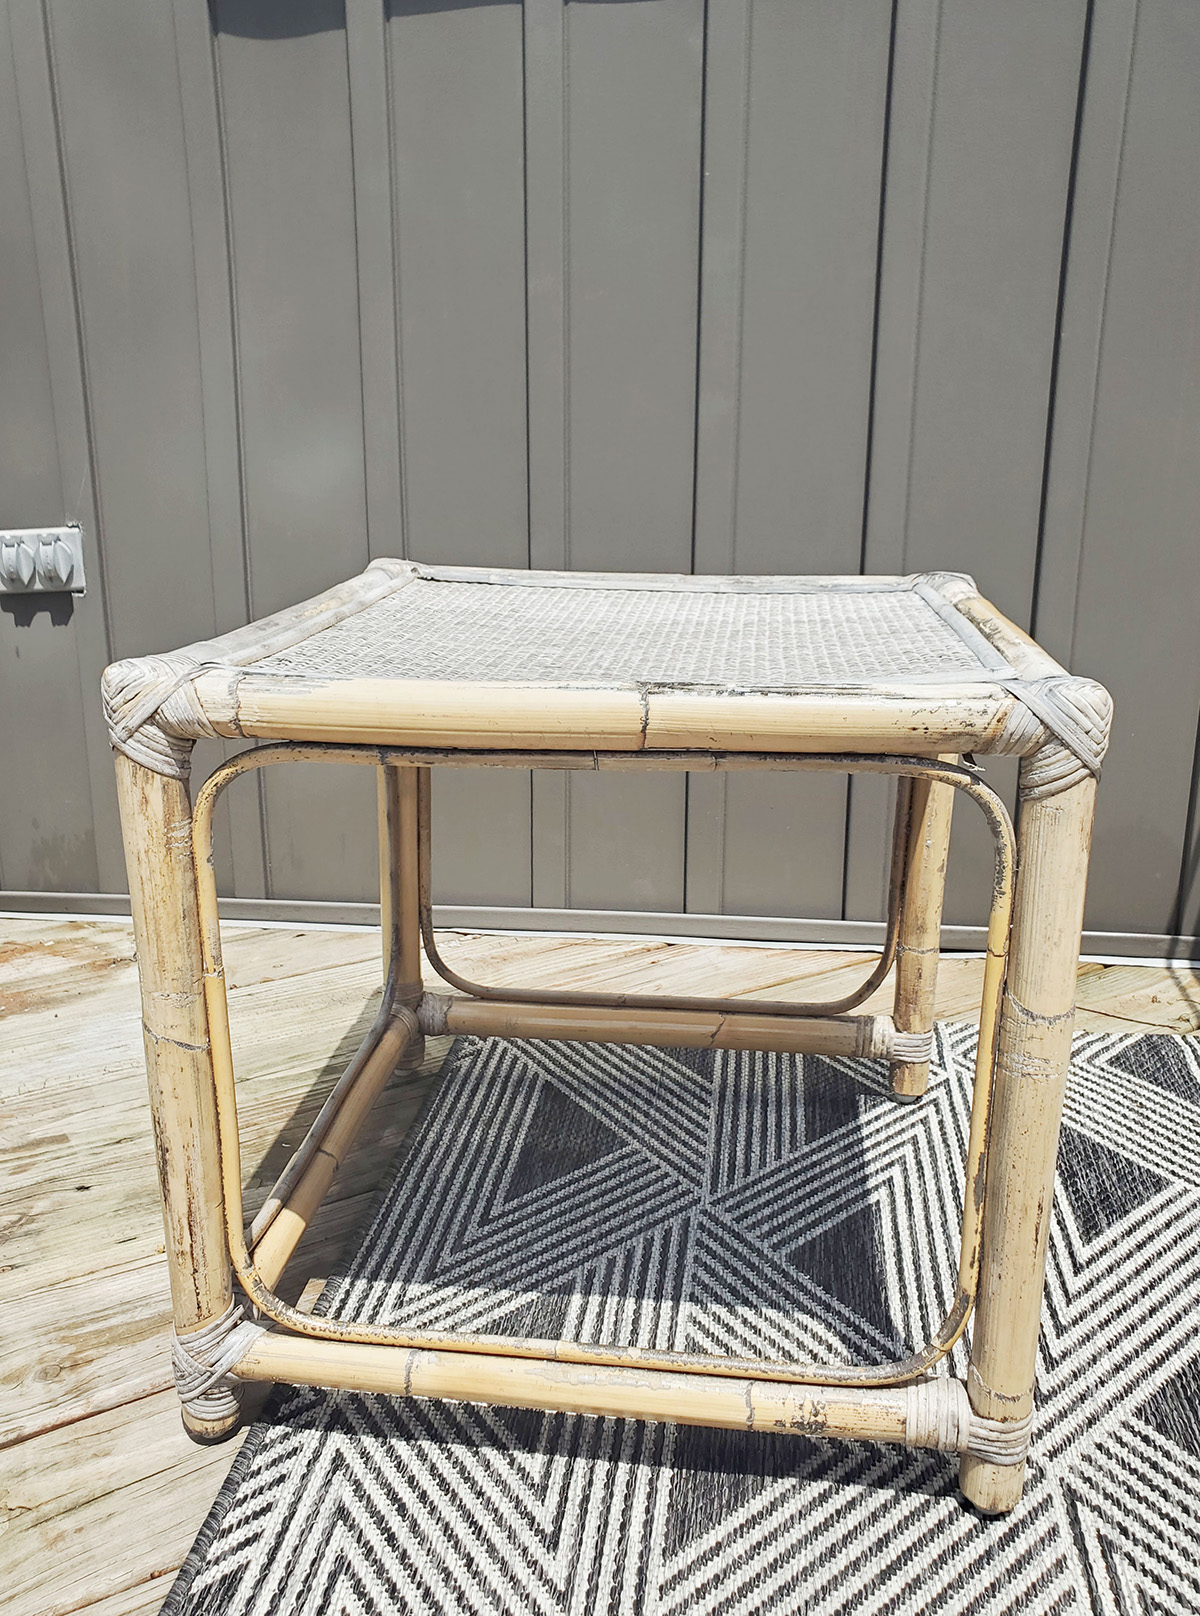 bamboo furniture damaged from rain and sun, how to repair rattan